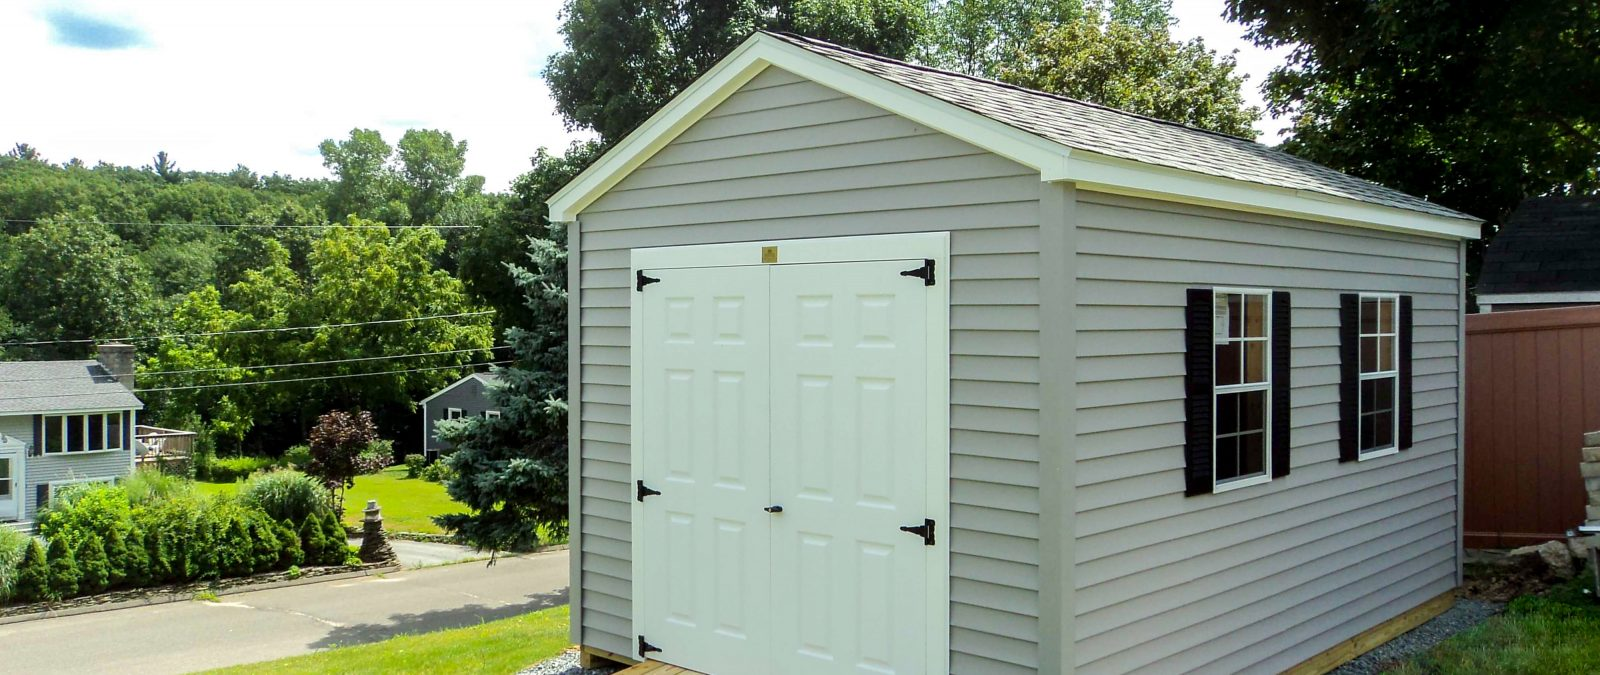 yard sheds for sale